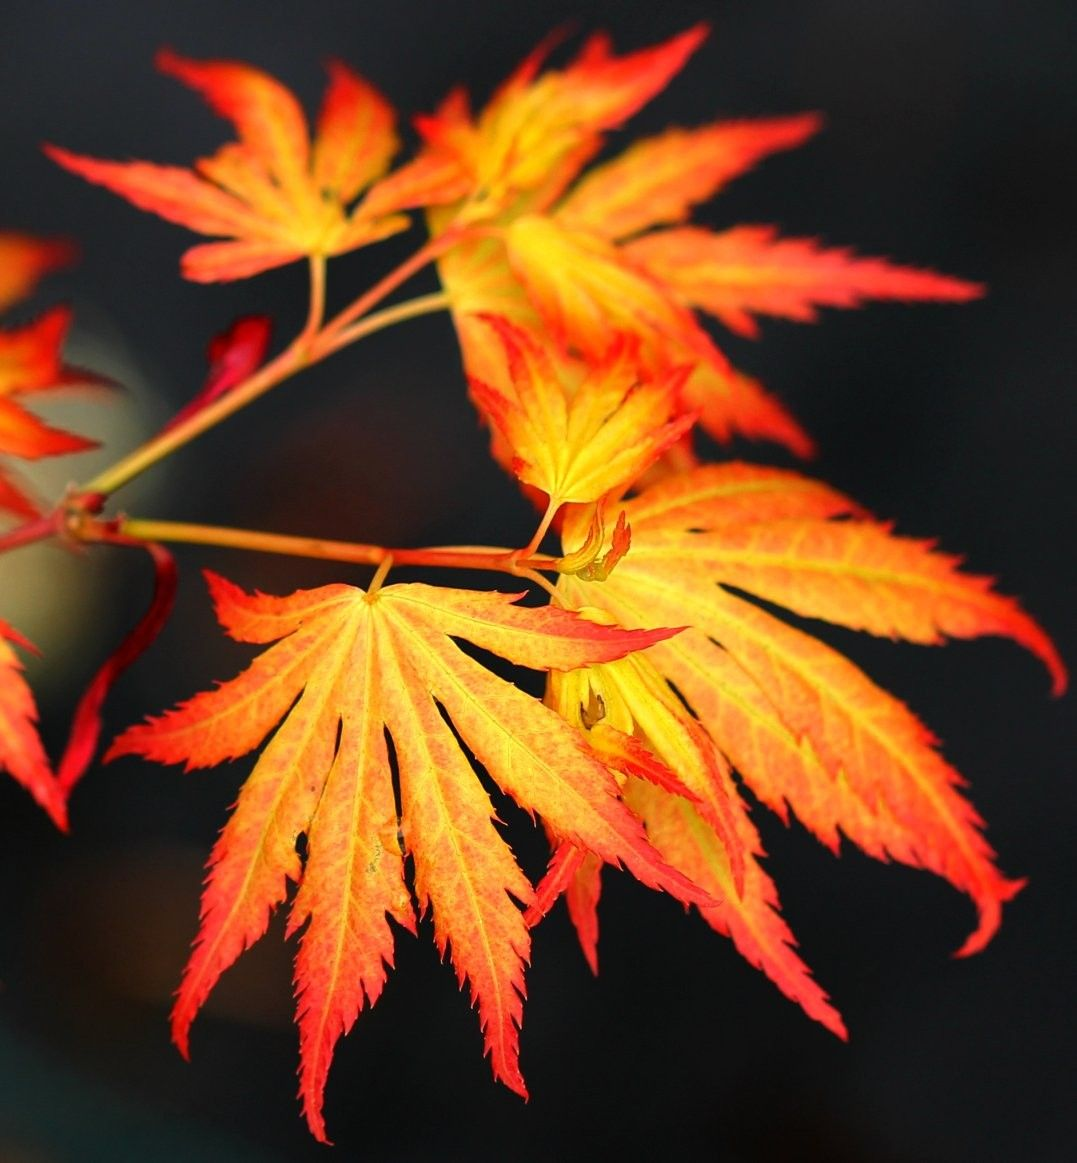 How to care for a fern leaf japanese maple - Acer Palmatum Orange Dream Japanese Maple Tree